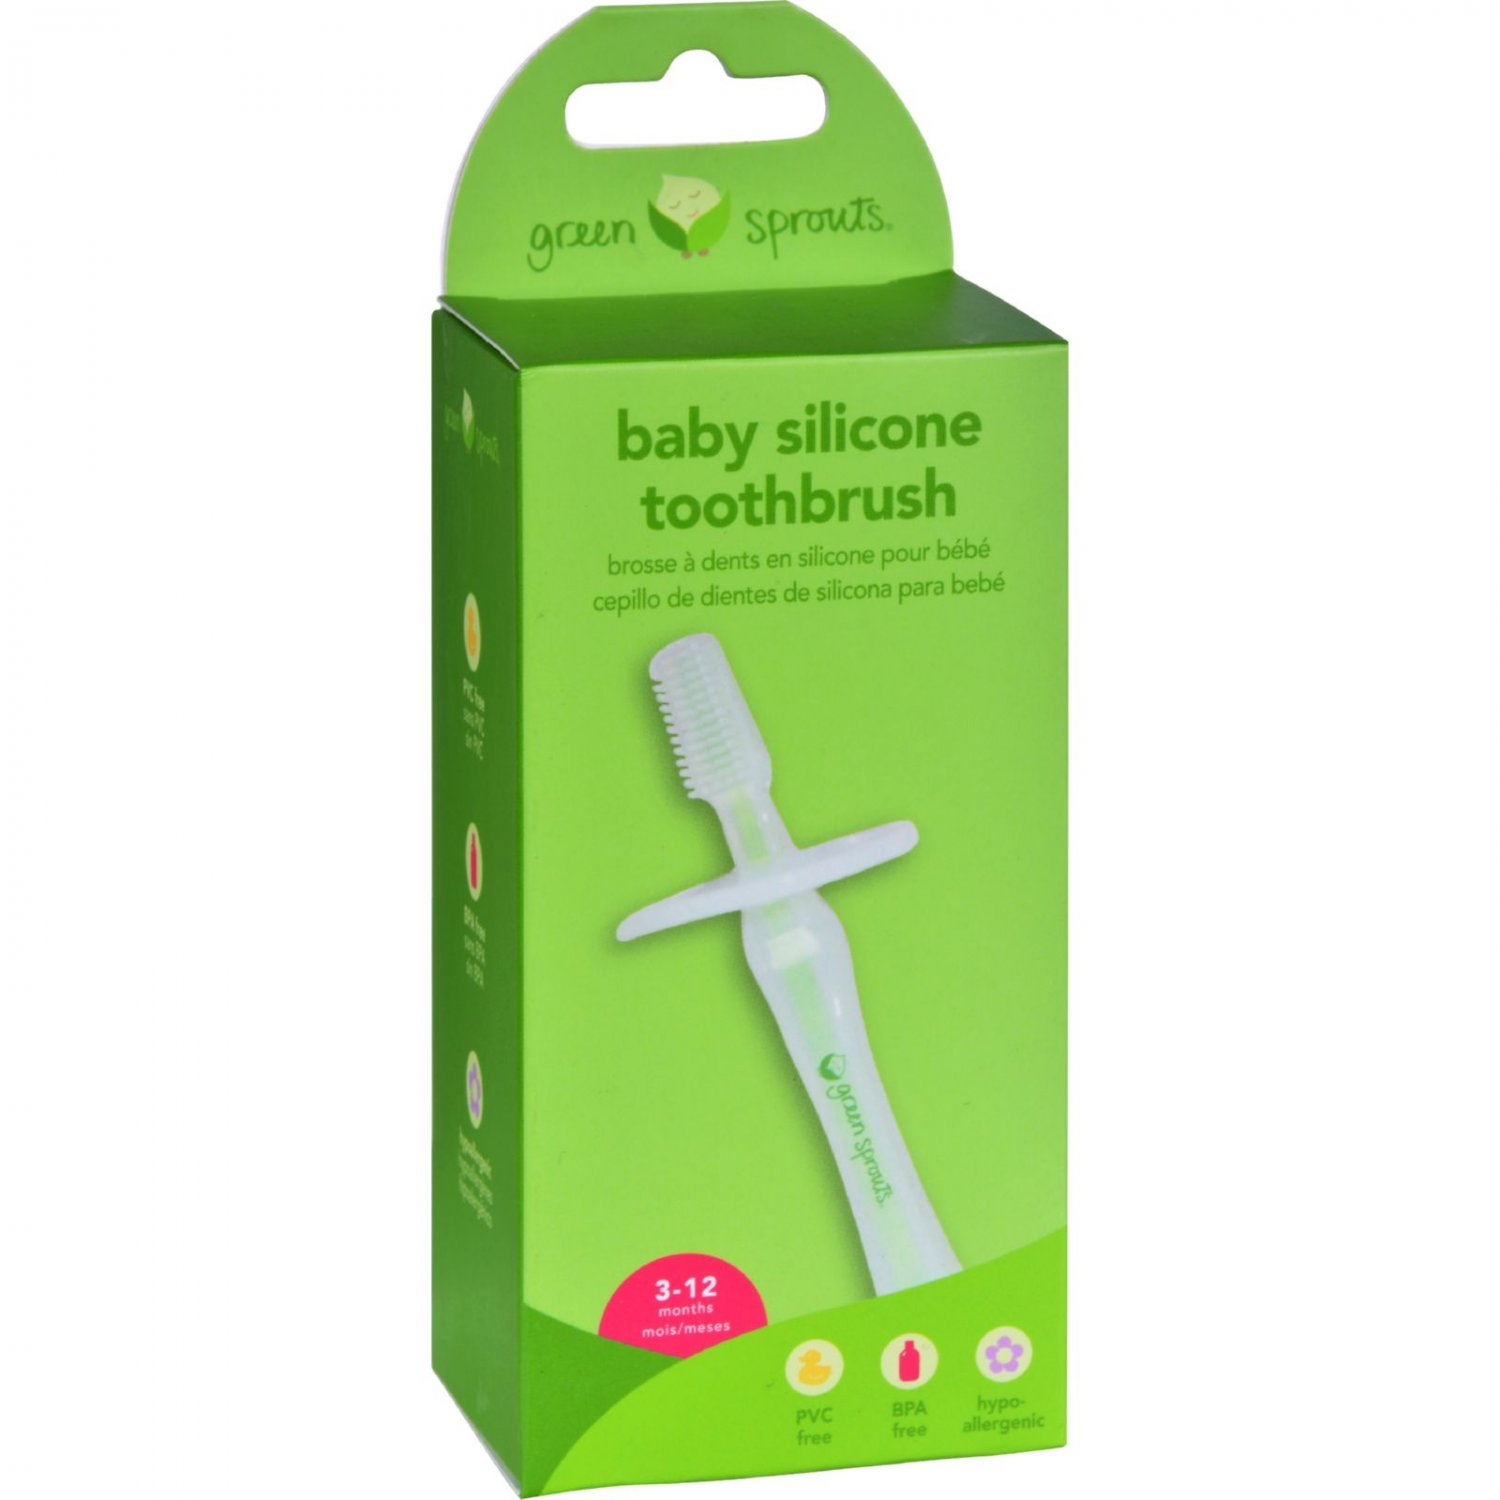 Green Sprouts Silicone Baby Toothbrush